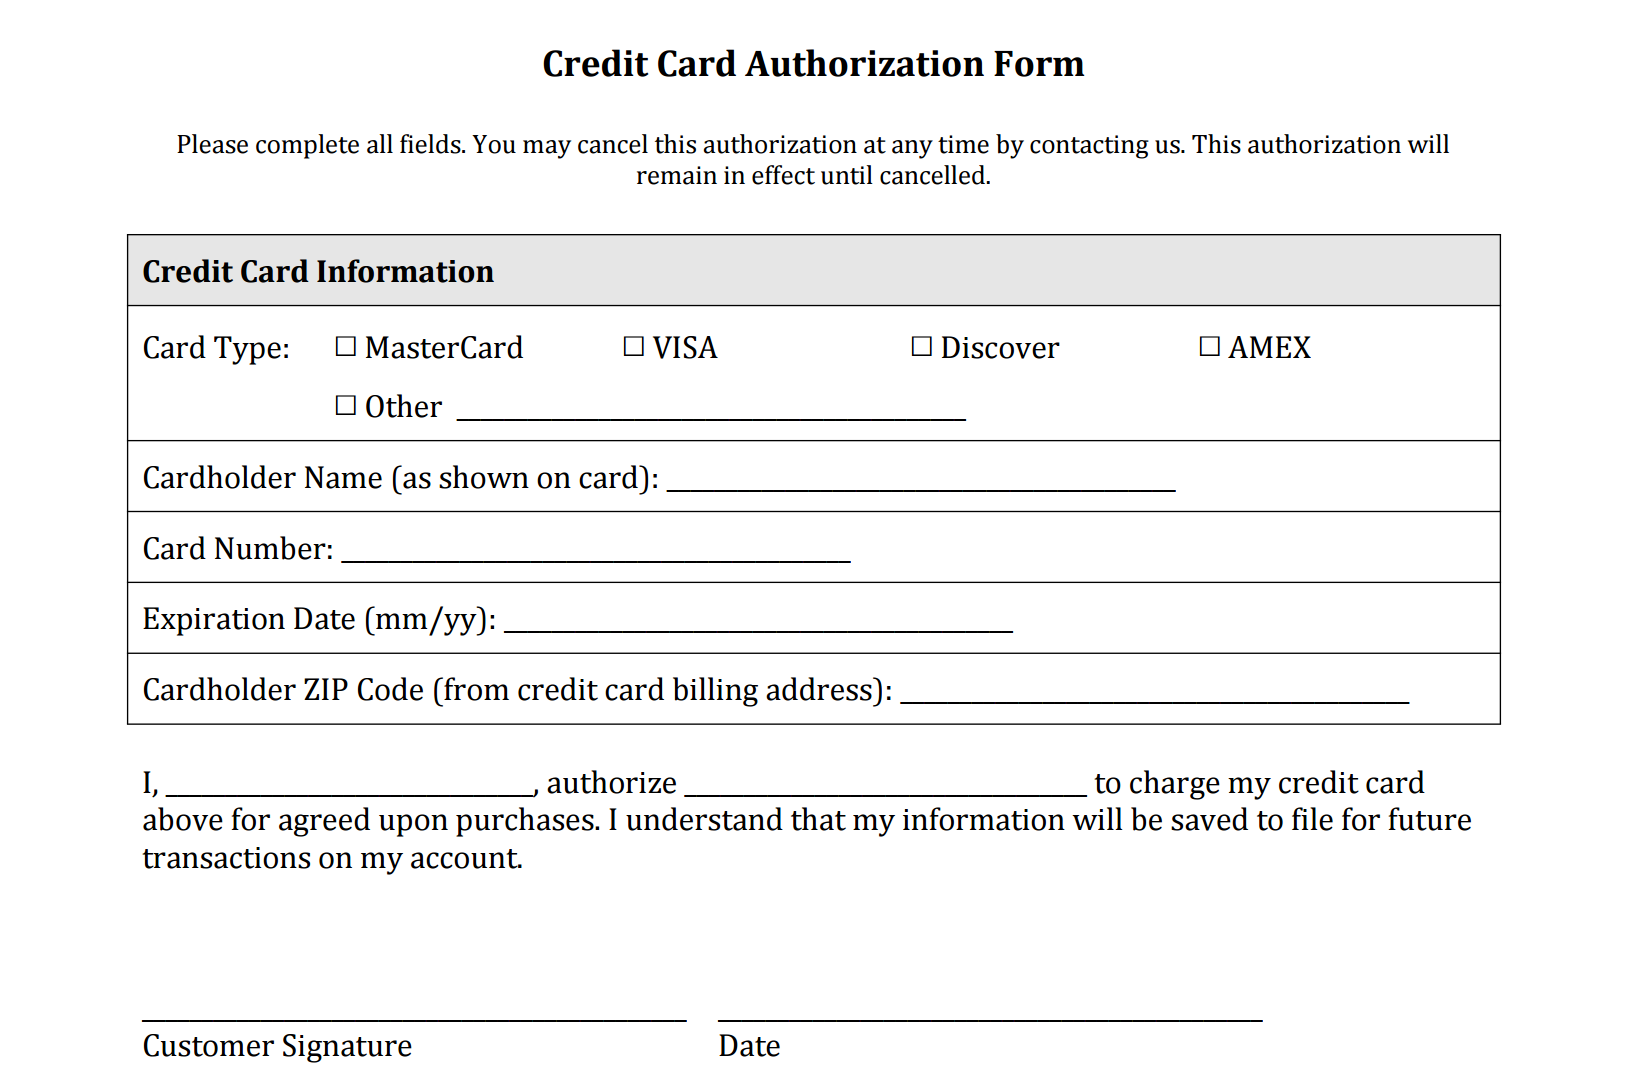 Credit Card Authorization Form Templates Download - How to create a new invoice template in quickbooks for service business